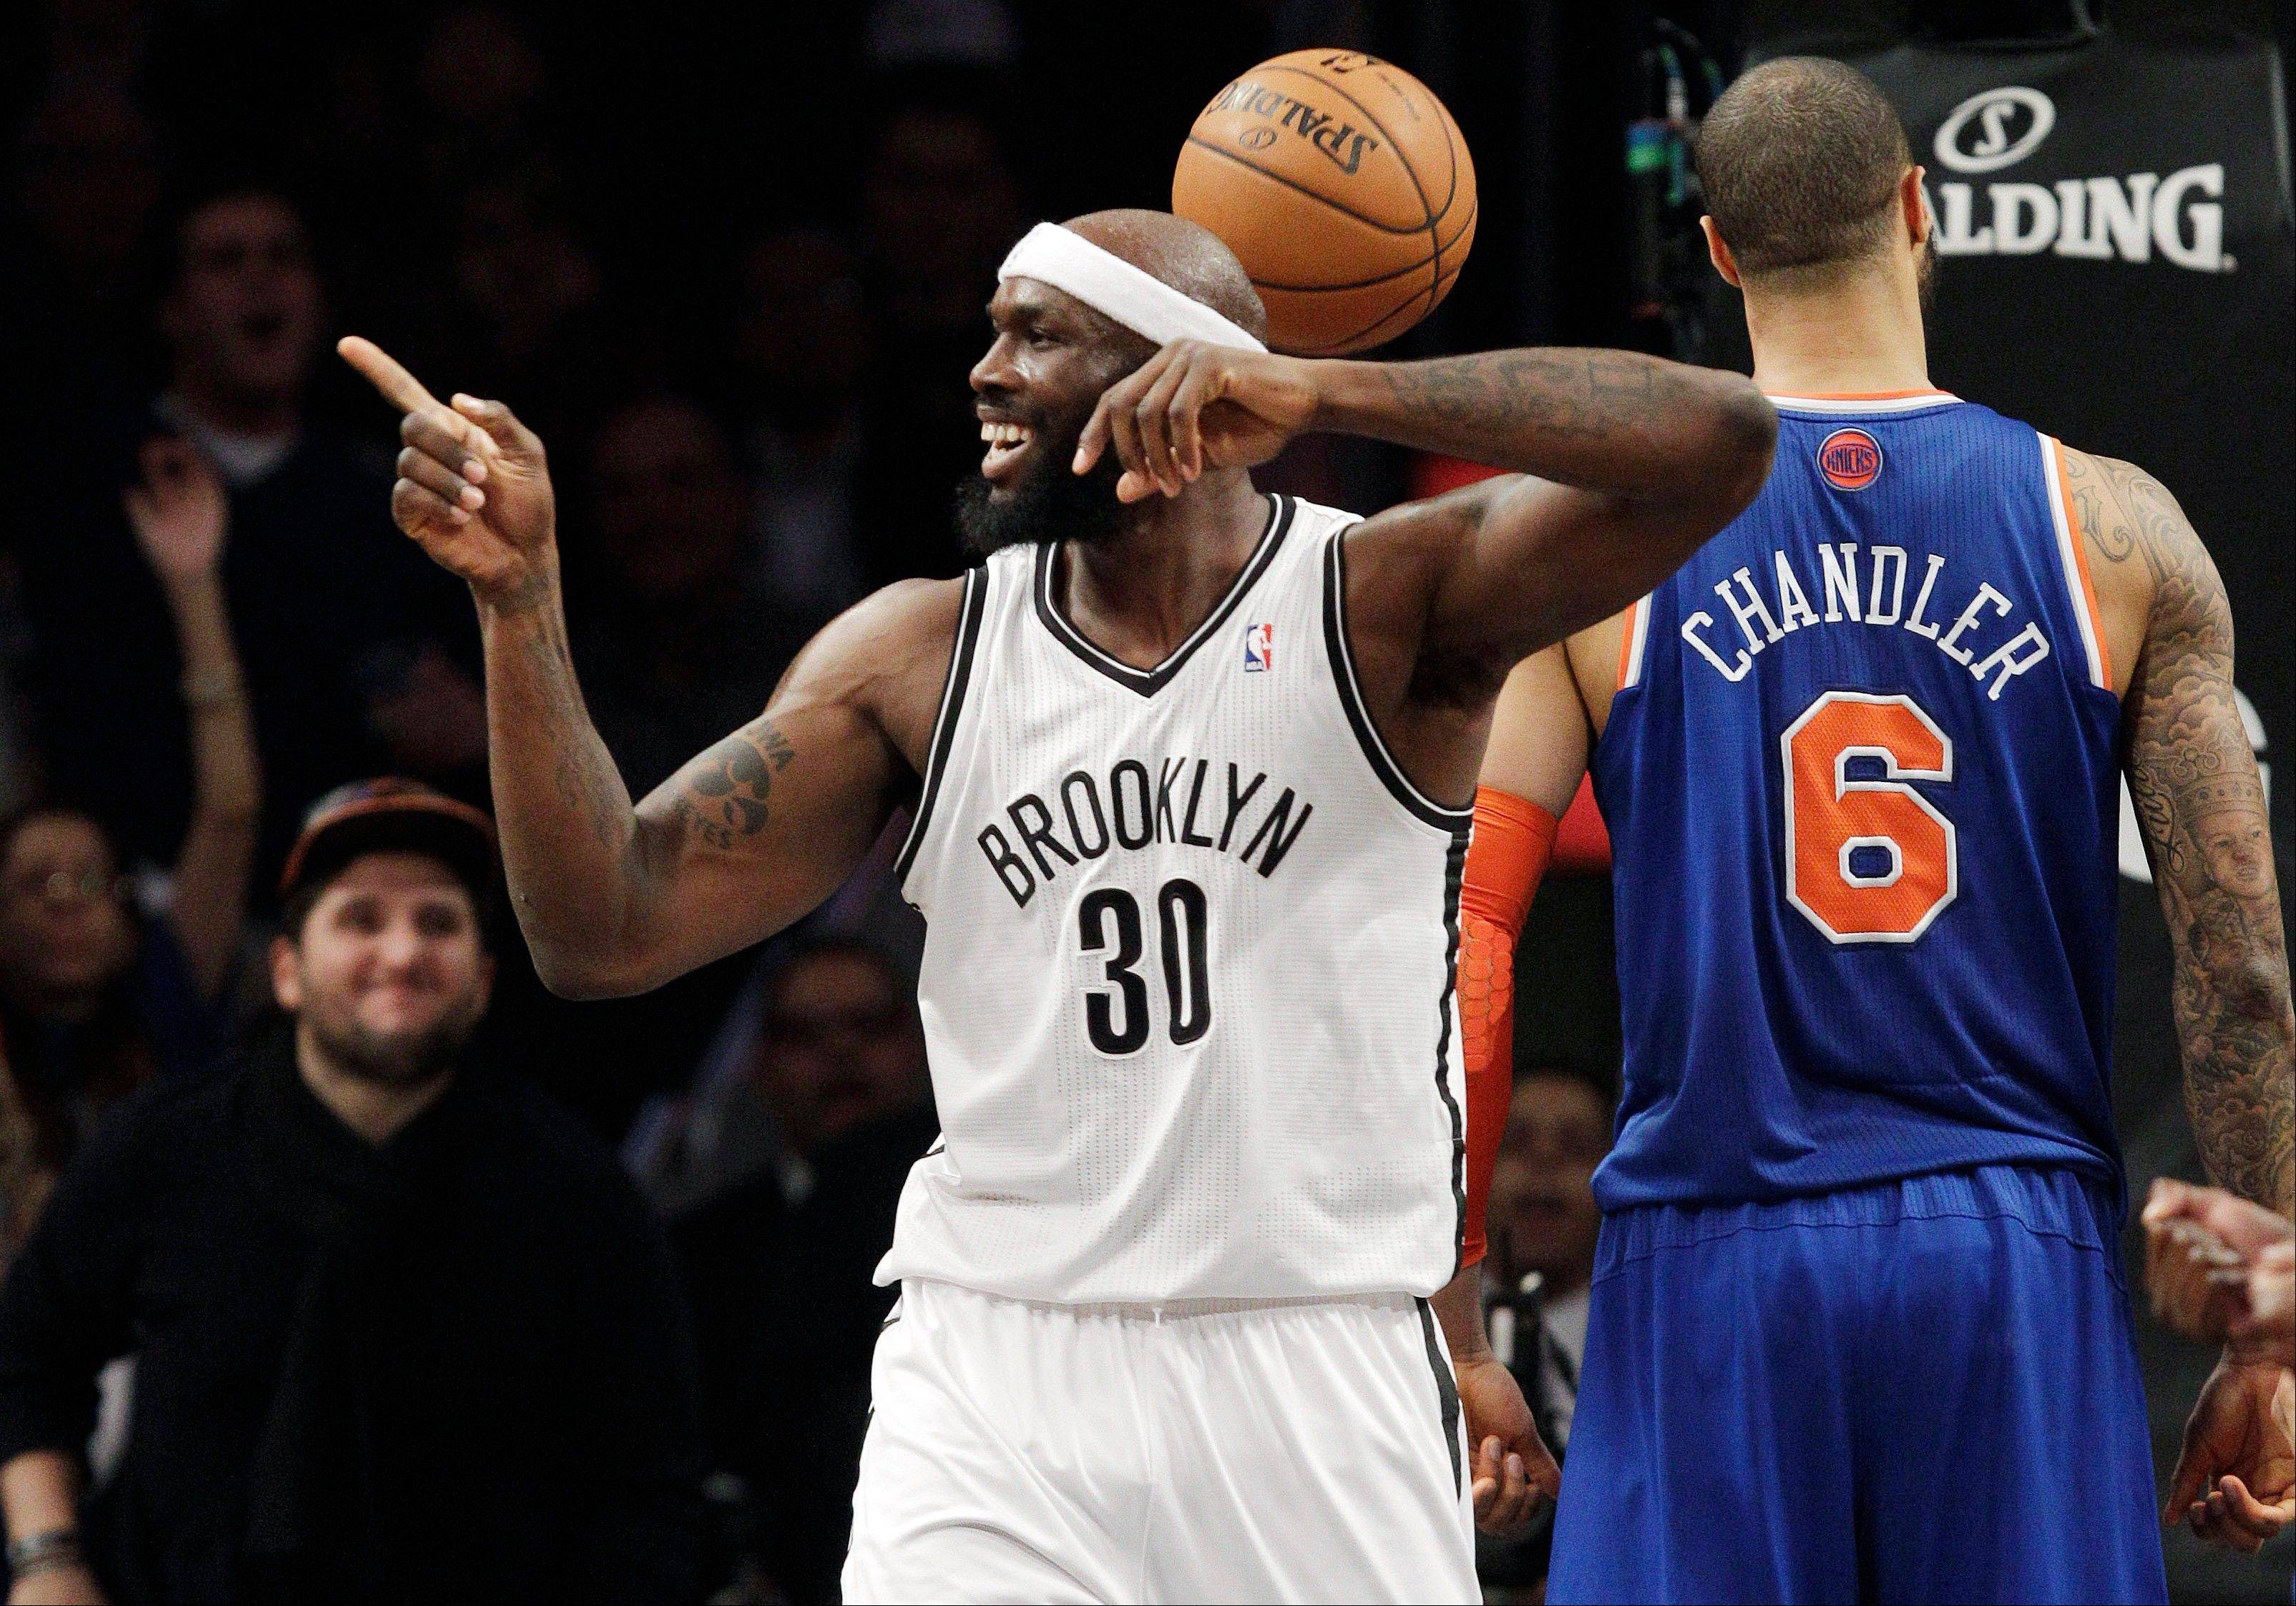 Brooklyn Nets forward Reggie Evans (30) reacts after blocking a shot by New York Knicks center Tyson Chandler (6) in the first half of their NBA basketball game at Barclays Center, Monday, Nov. 26, 2012, in New York. The Nets won 96-89 in overtime.